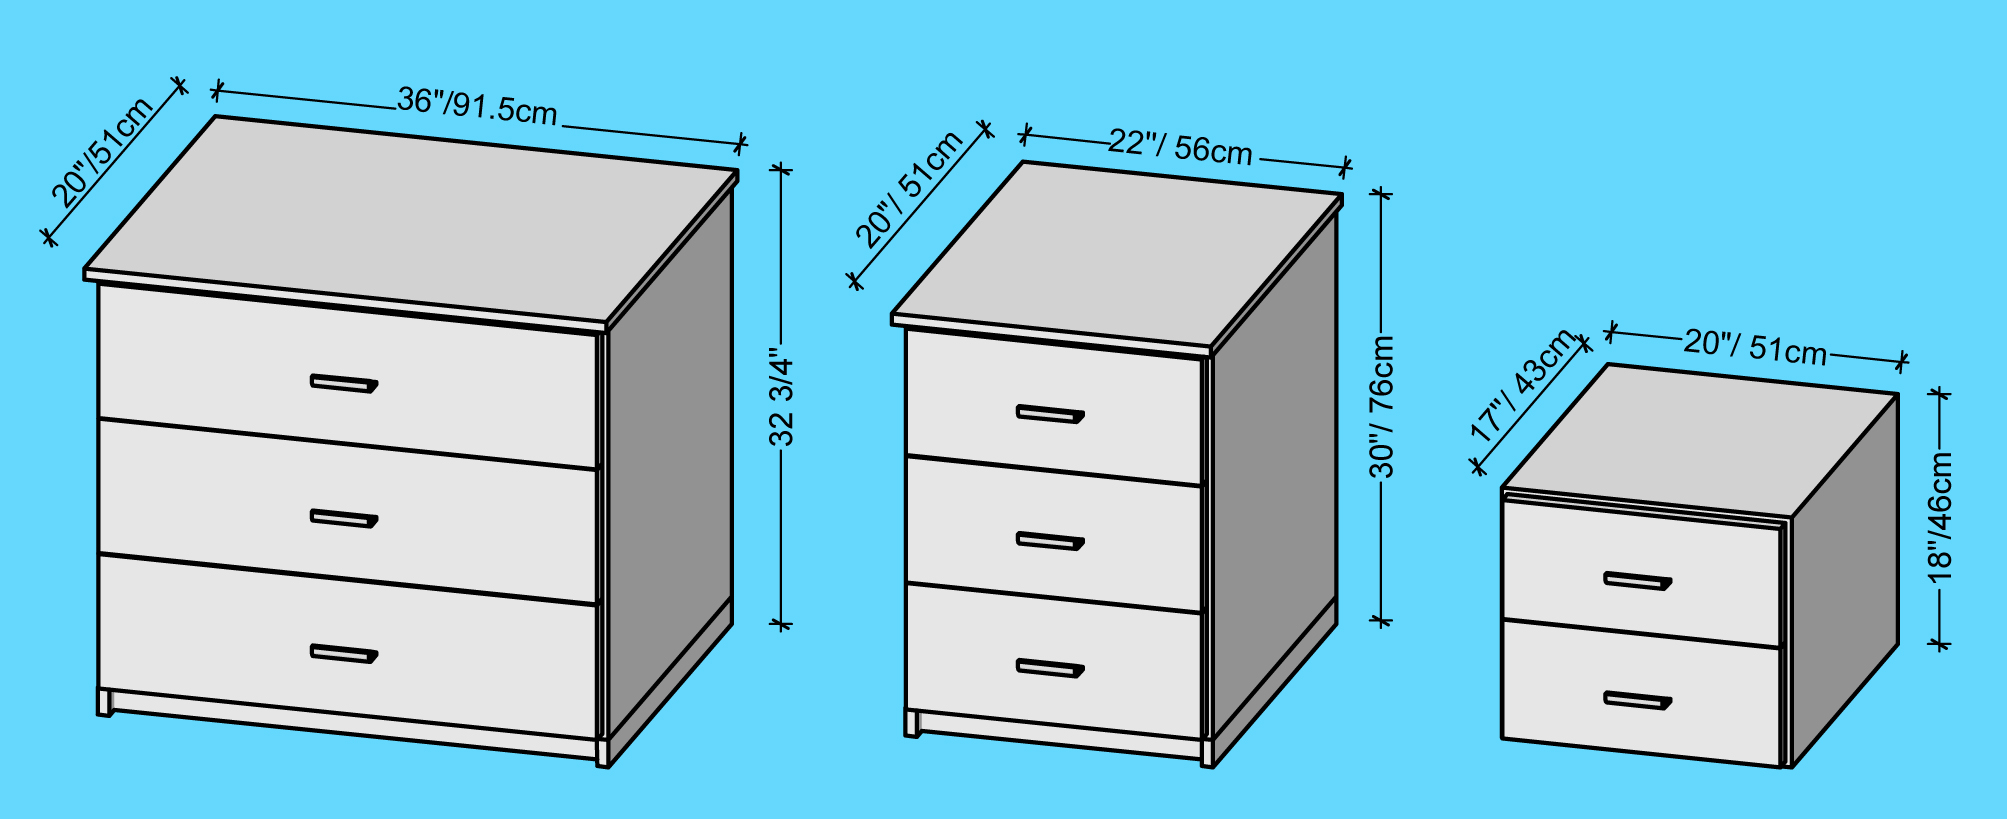 Bedside Chest Dimensions, Bedside Chest Measurements, Bedside Chest Height,  Bedside Chest Size